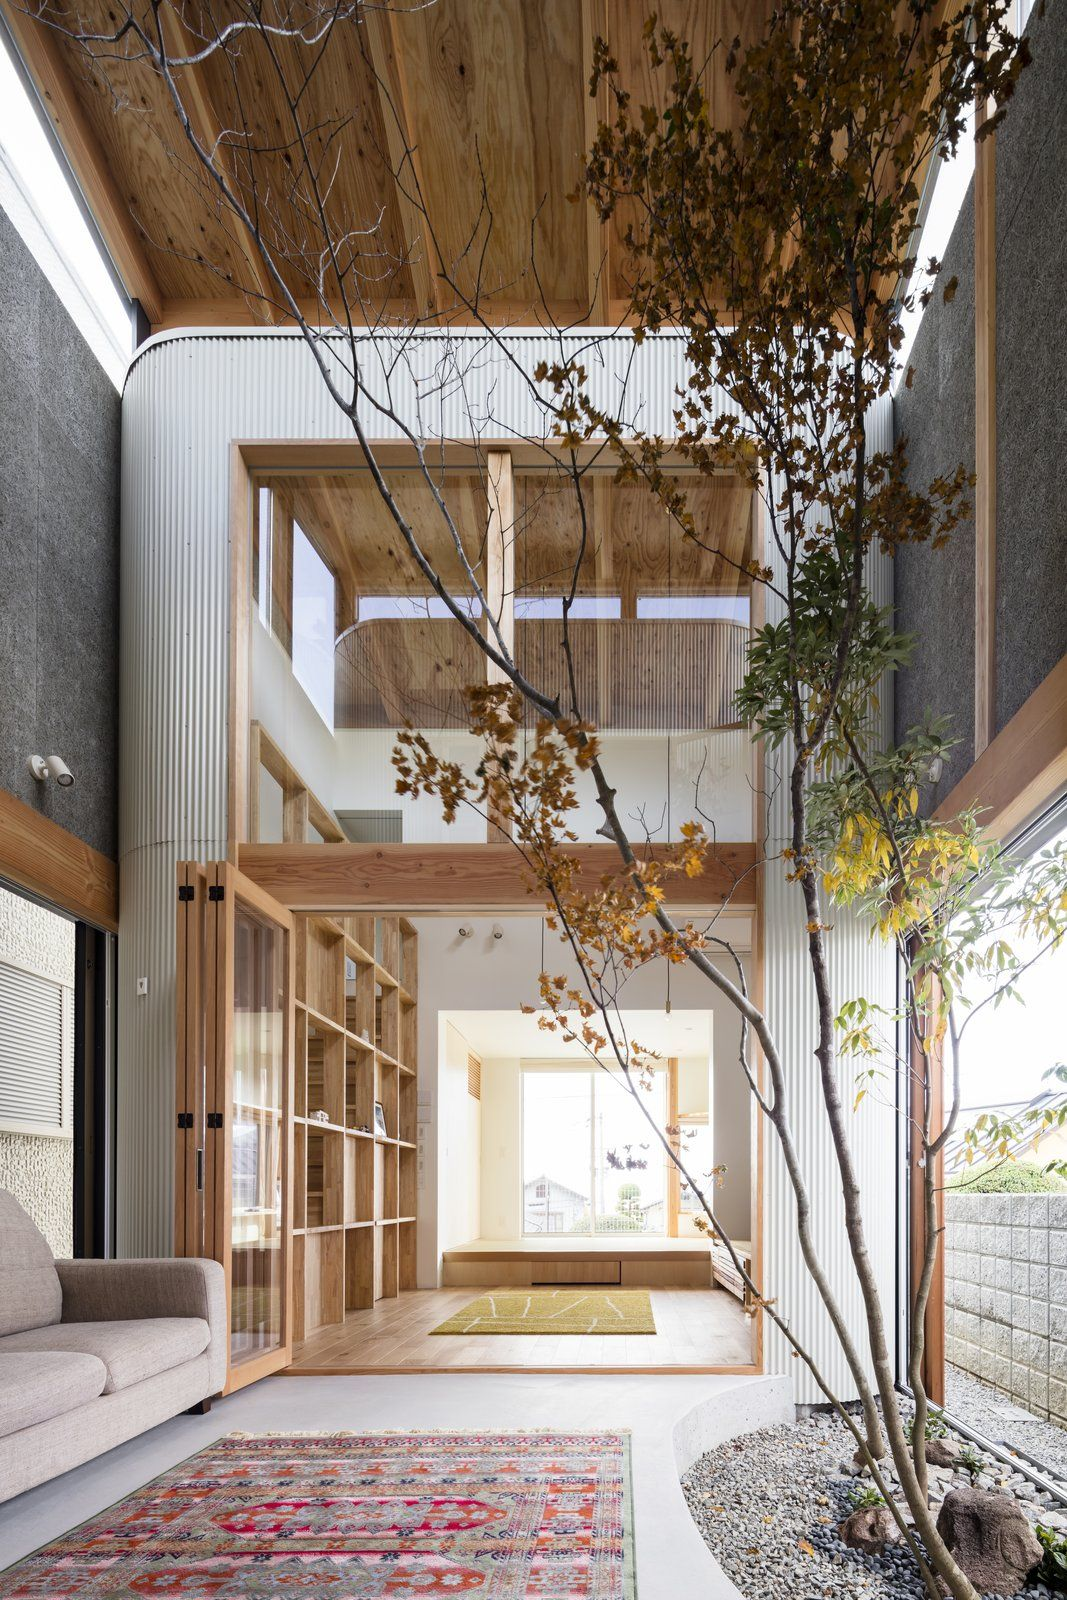 Melt House By Sai Architectural Design Office In 2020 Japanese Interior Design Interior Architecture Design Architecture Design